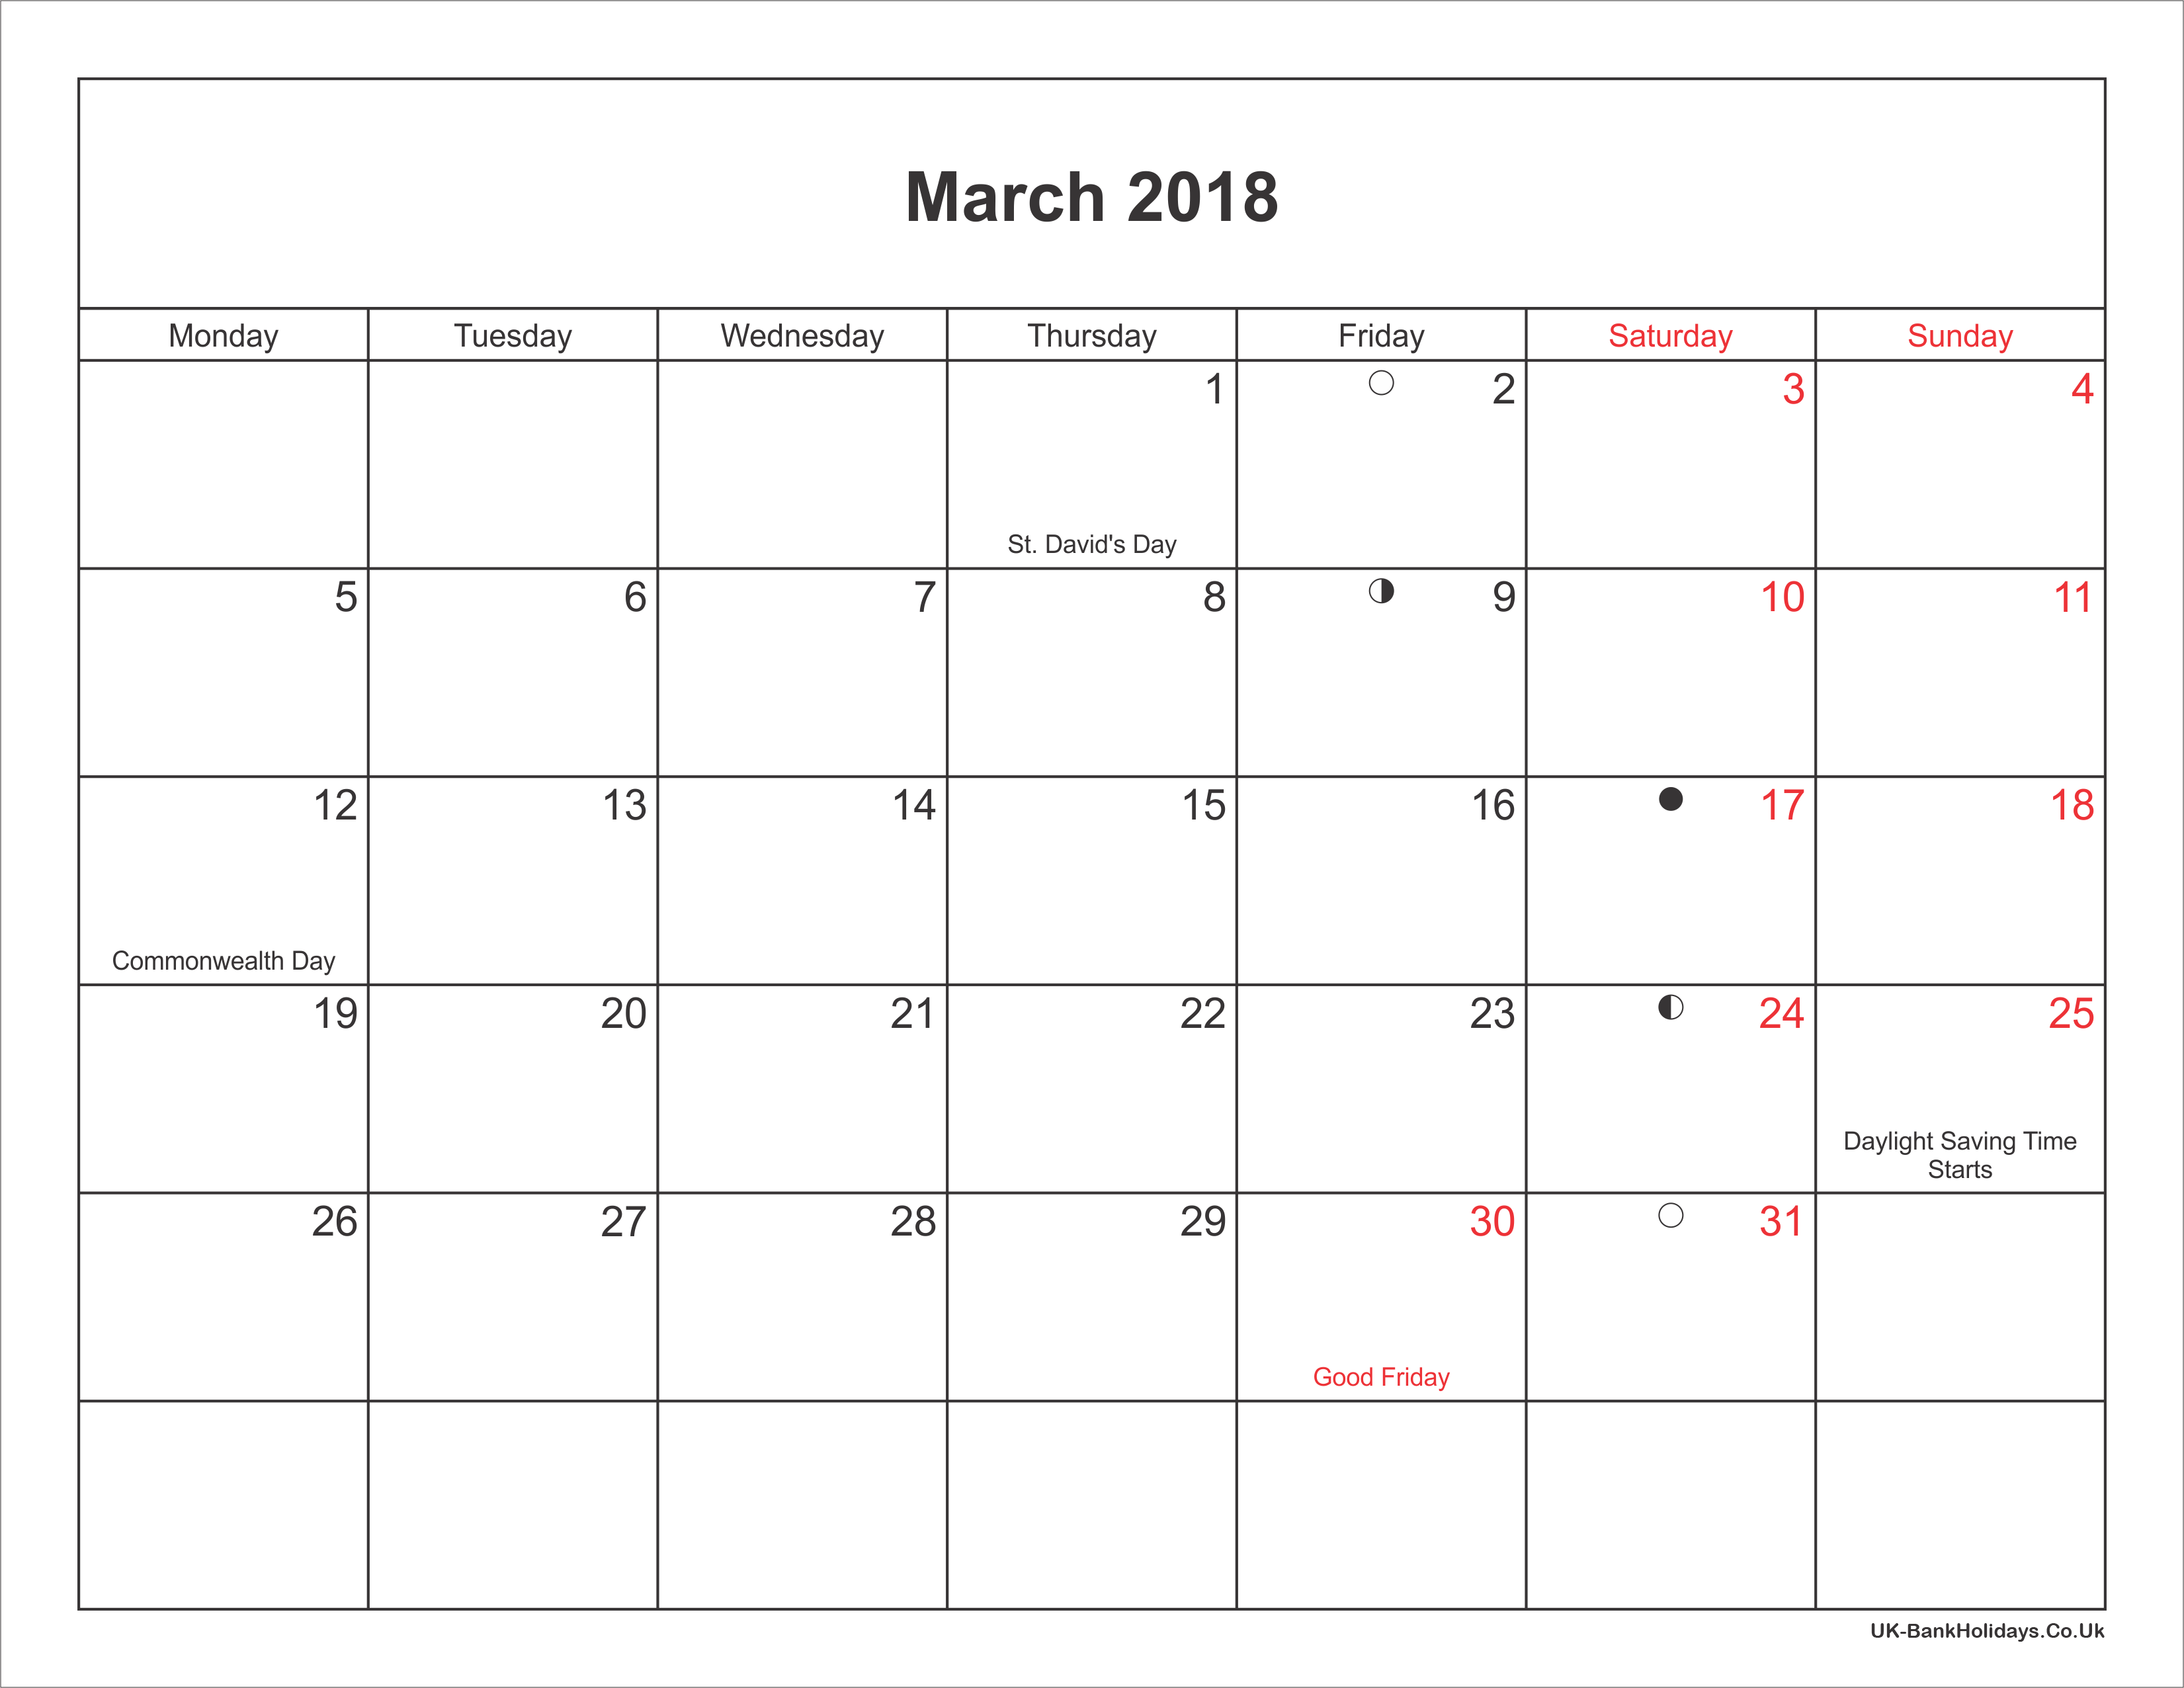 March 2018 Calendar Printable With Bank Holidays UK